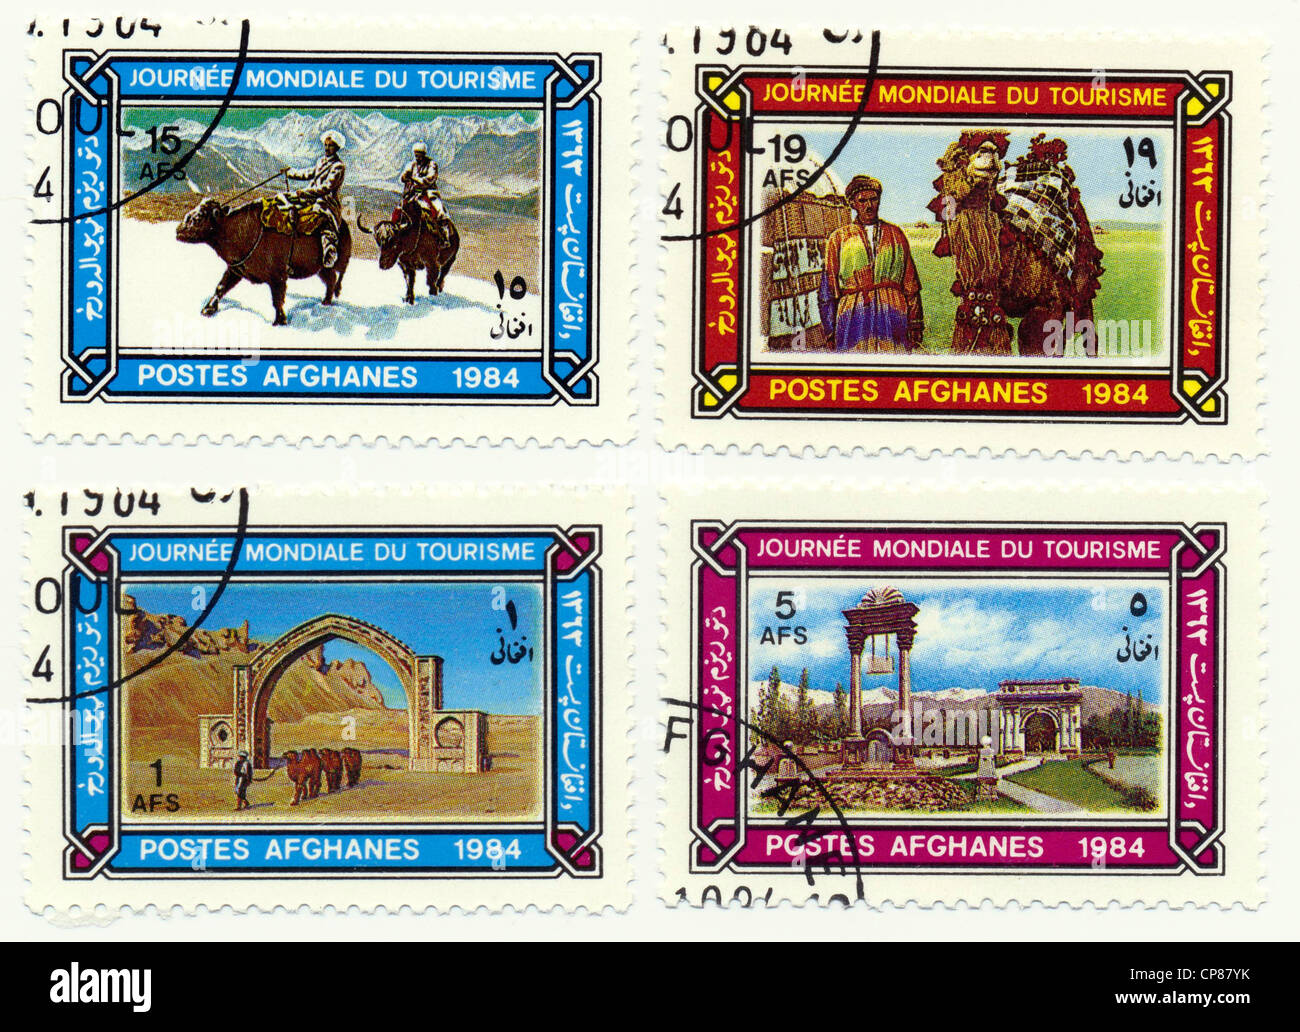 Historic postage stamps from Afghanistan, celebration of the World Tourism Day, Historische Briefmarken aus Afghanistan - Stock Image